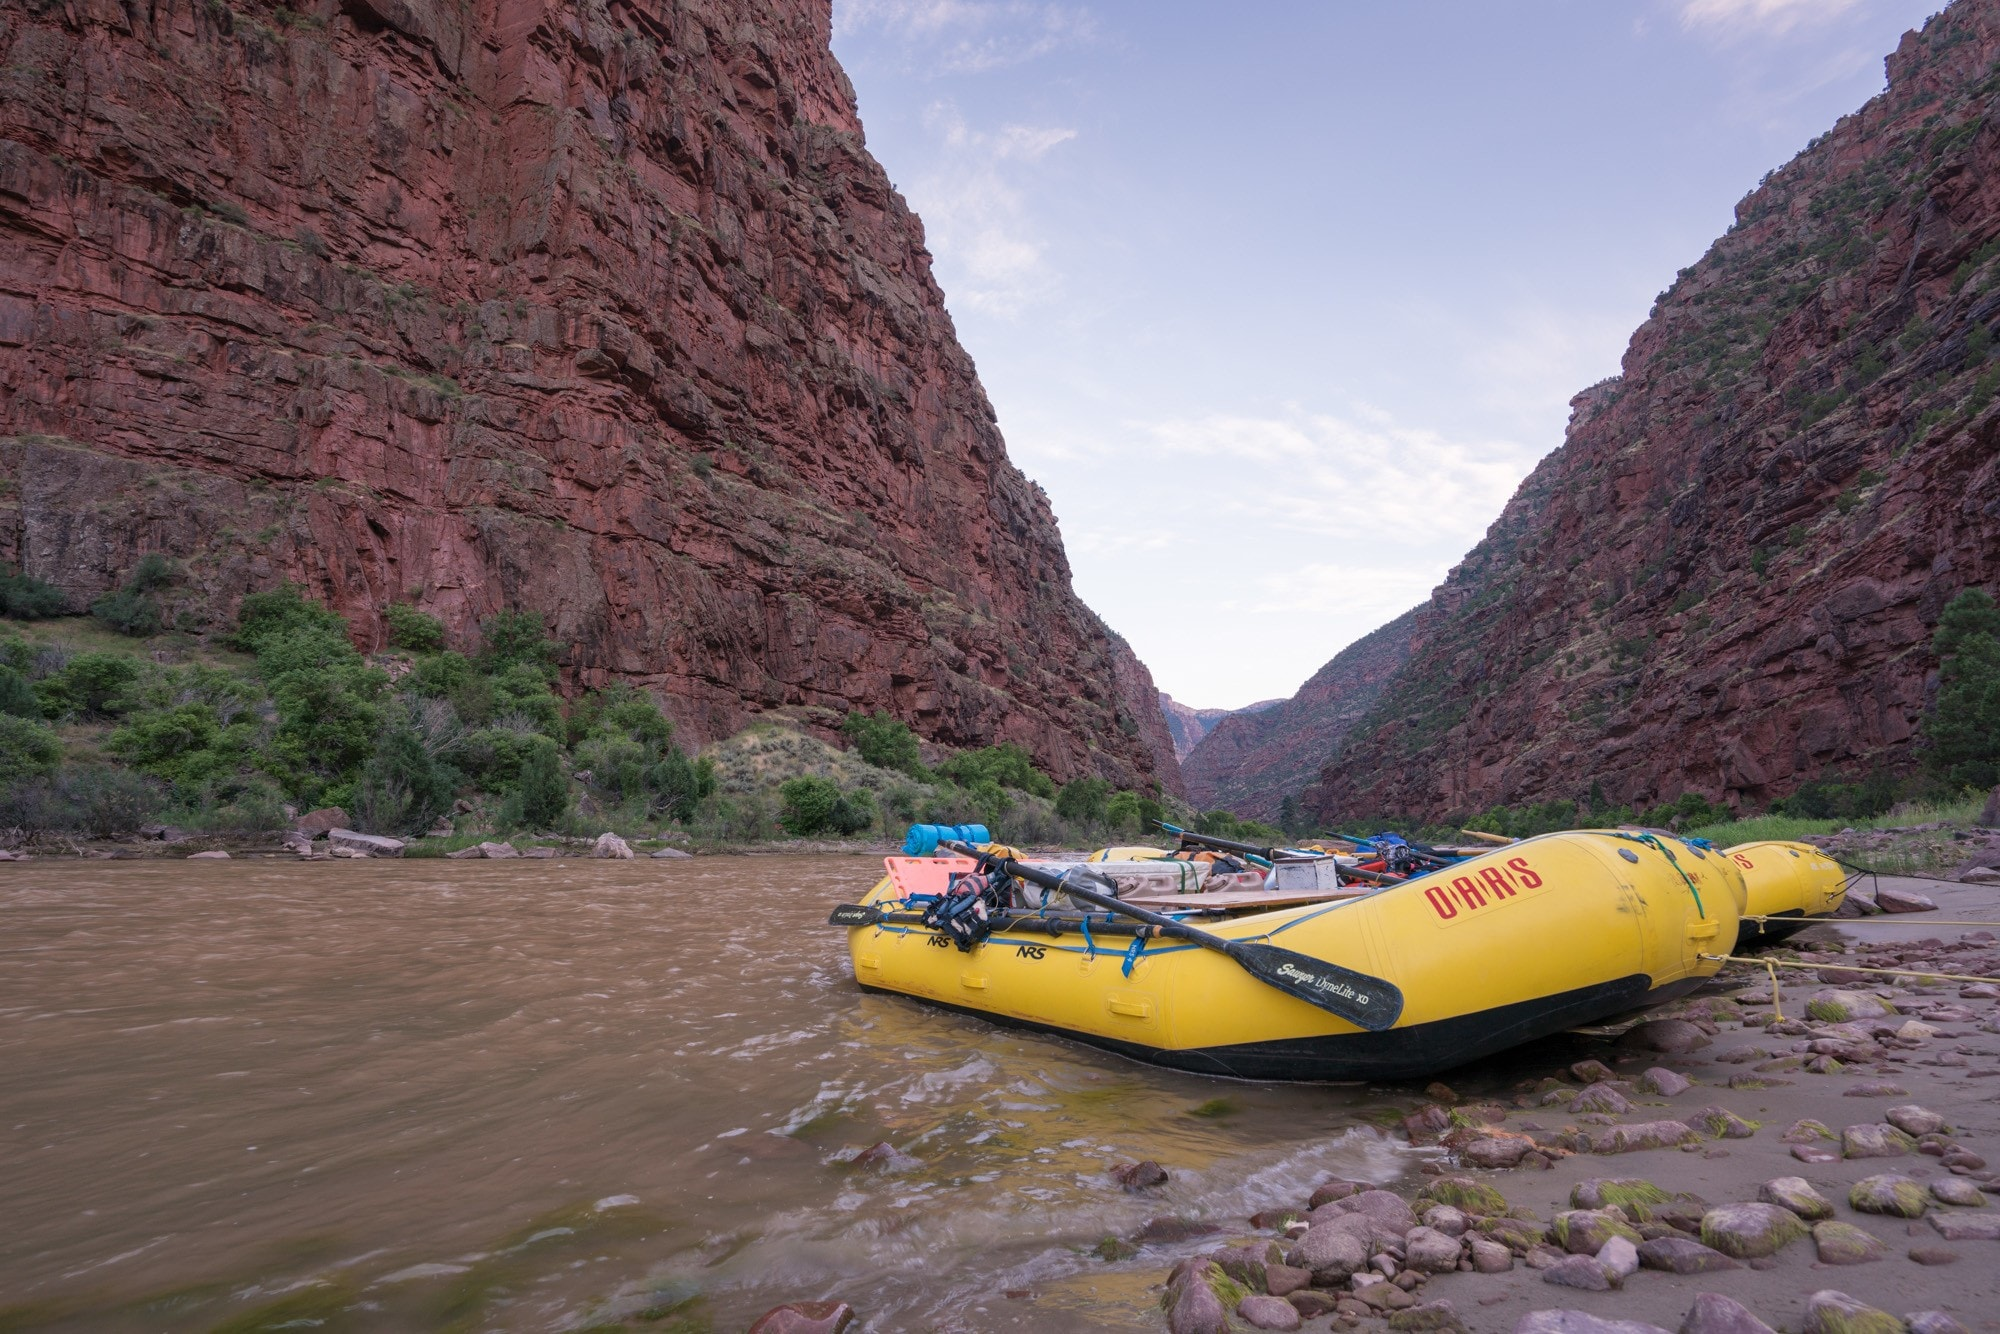 Check out my review & YouTube video of my OARS Gates of Lodore rafting trip and learn what to expect on a multi-day whitewater adventure with OARS.